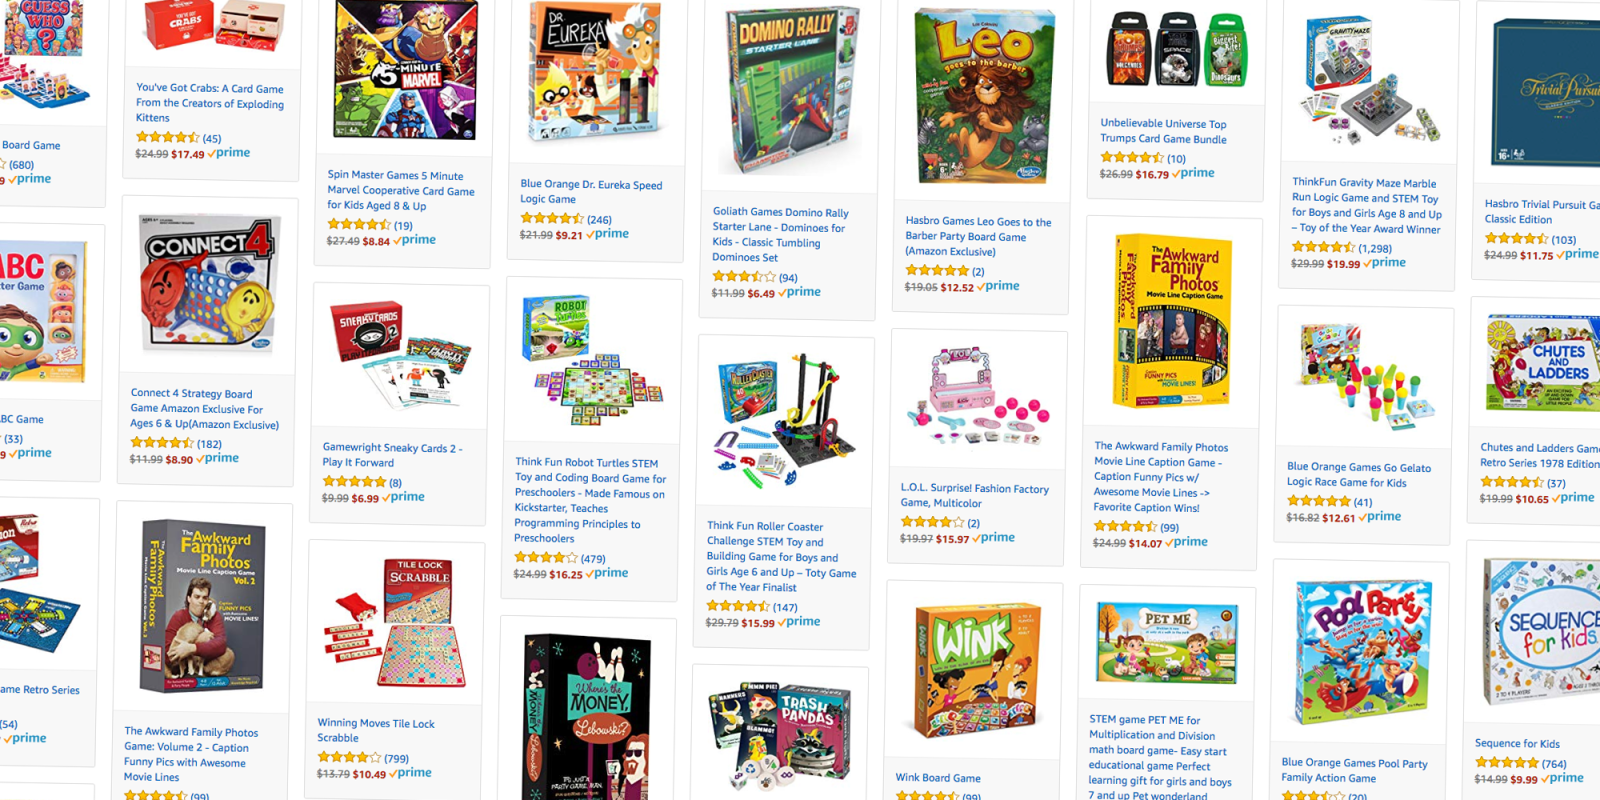 Amazon discounts family games like Outburst, Guess Who, Trivial Pursuit, more from $4